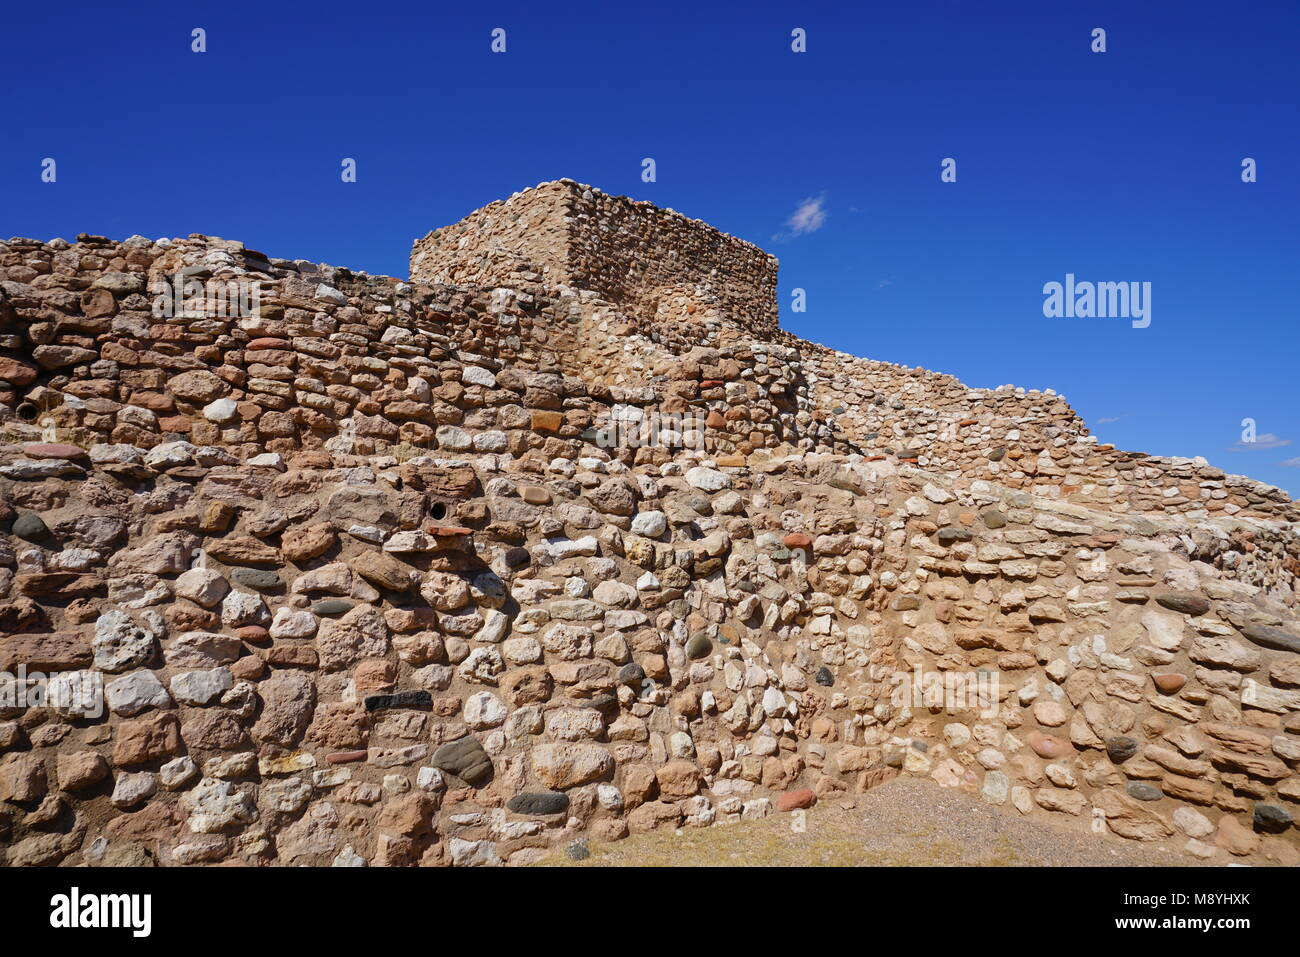 View of the Tuzigoot National Monument, a pueblo ruin on the National Register of Historic Places in Yavapai County, Stock Photo